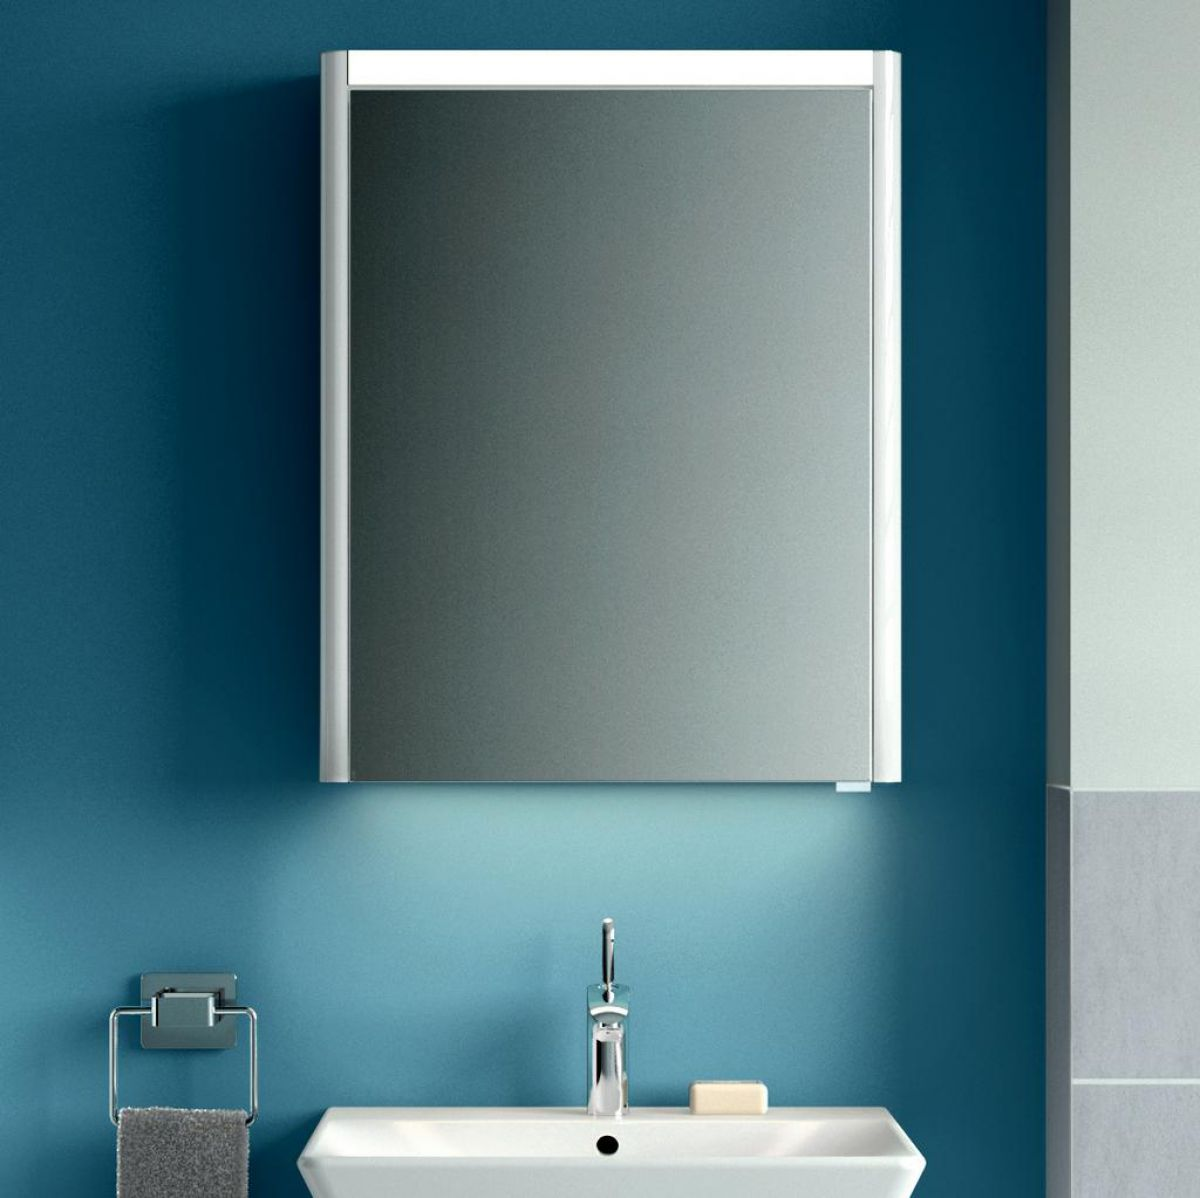 Vitra T4 Single Door Illuminated Mirror Cabinet